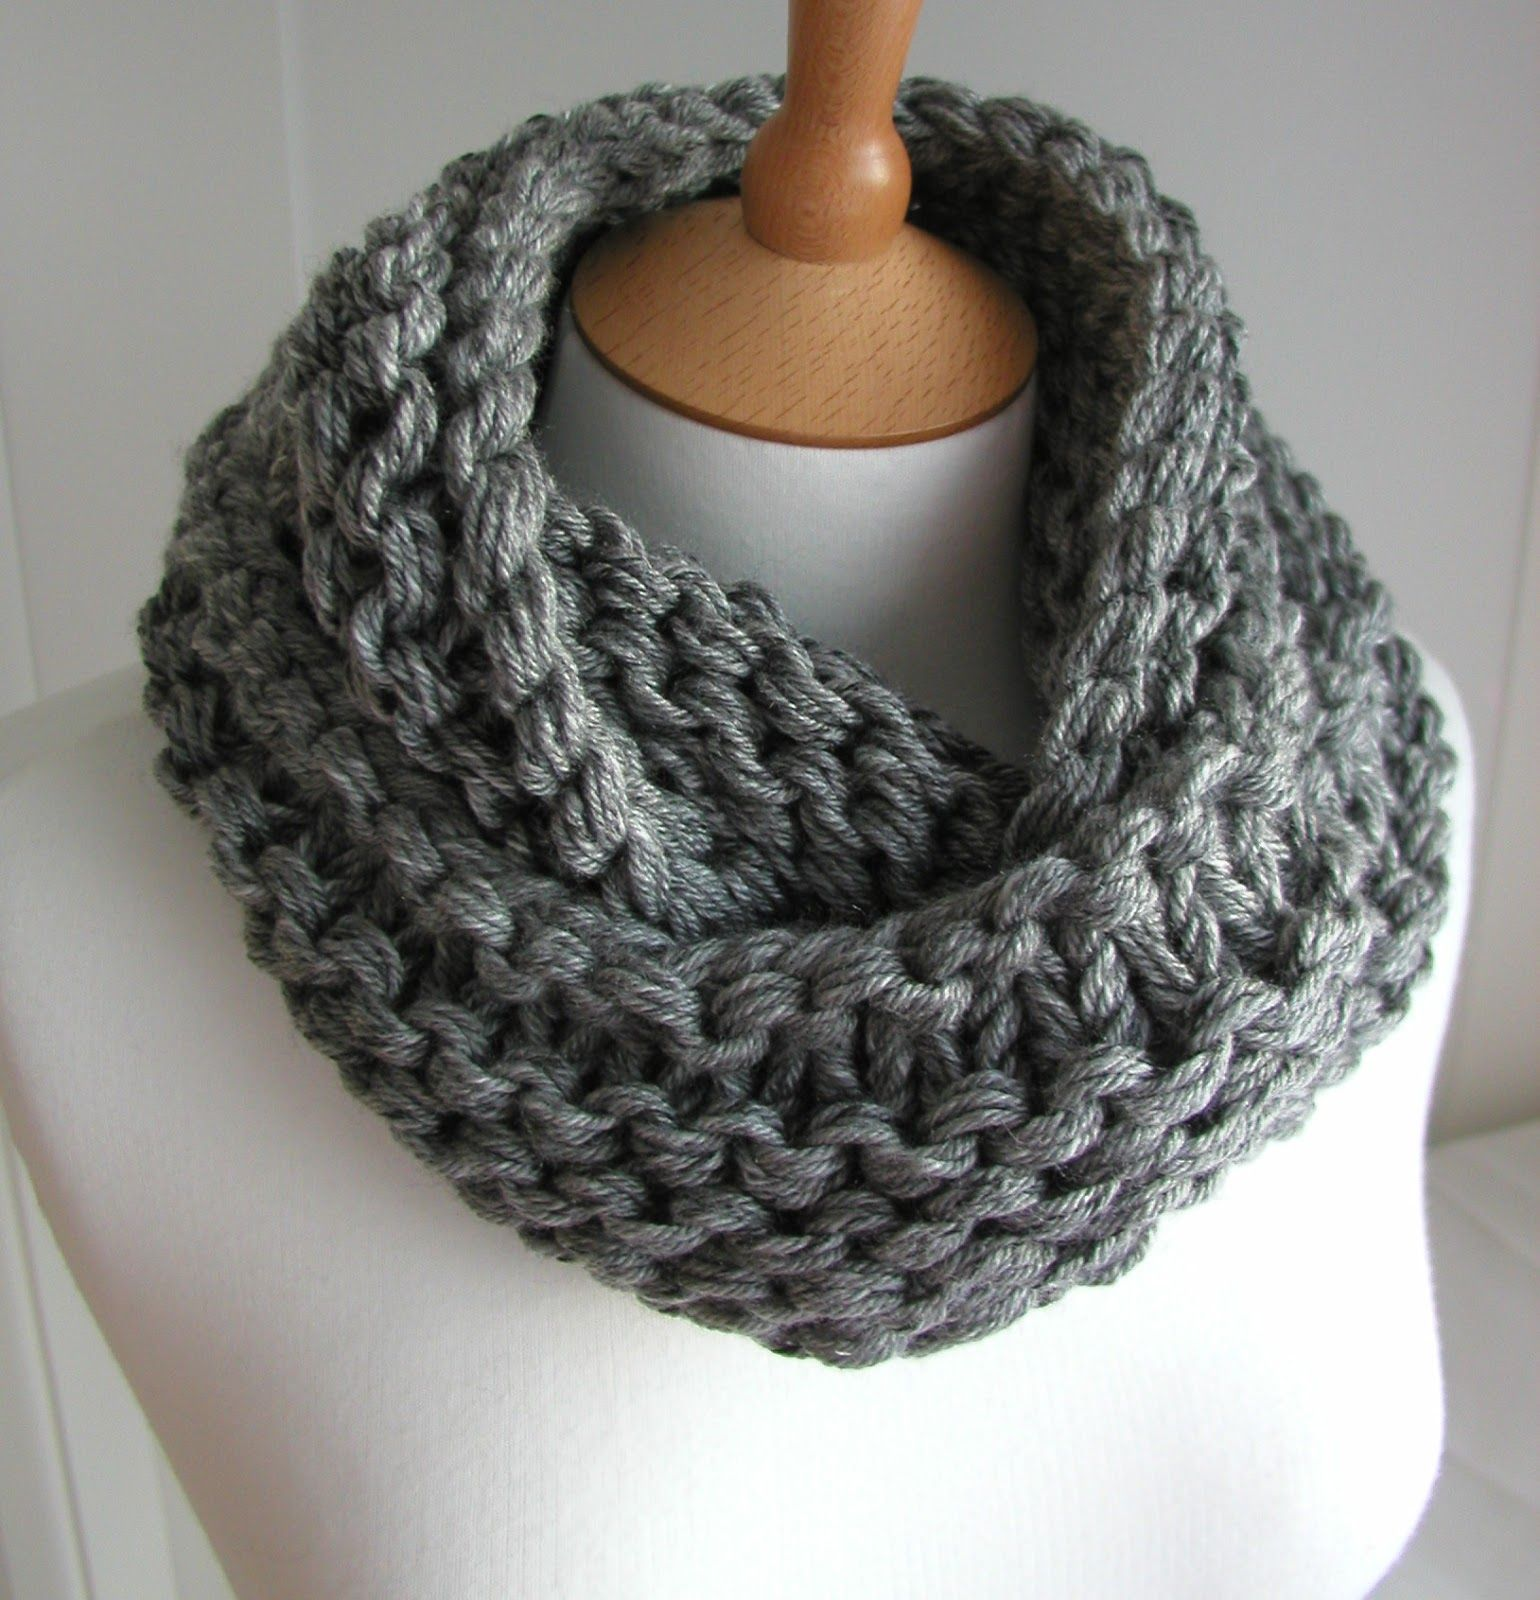 Hand Knitted Things: Steel Grey Chunky Circular Scarf Free Knitting ...